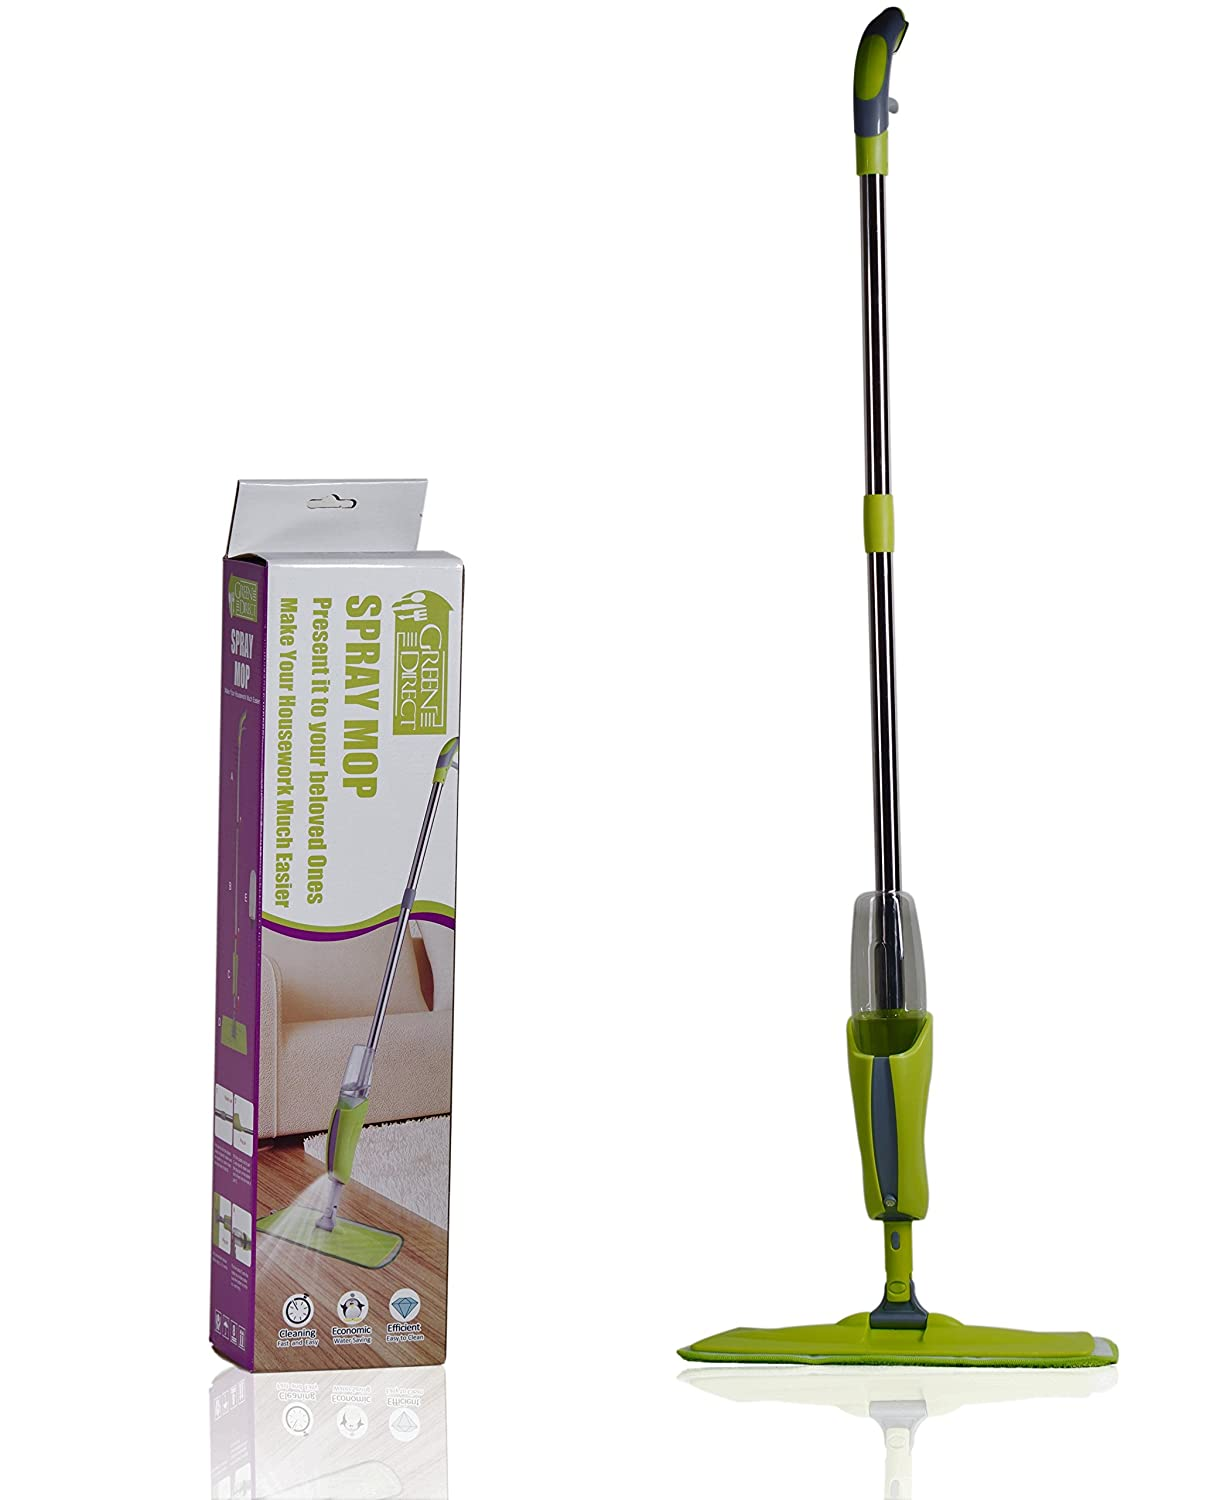 Amazon green direct hardwood floor mops for floor cleaning amazon green direct hardwood floor mops for floor cleaning laminate floor cleaner spray mop kits home kitchen dailygadgetfo Image collections